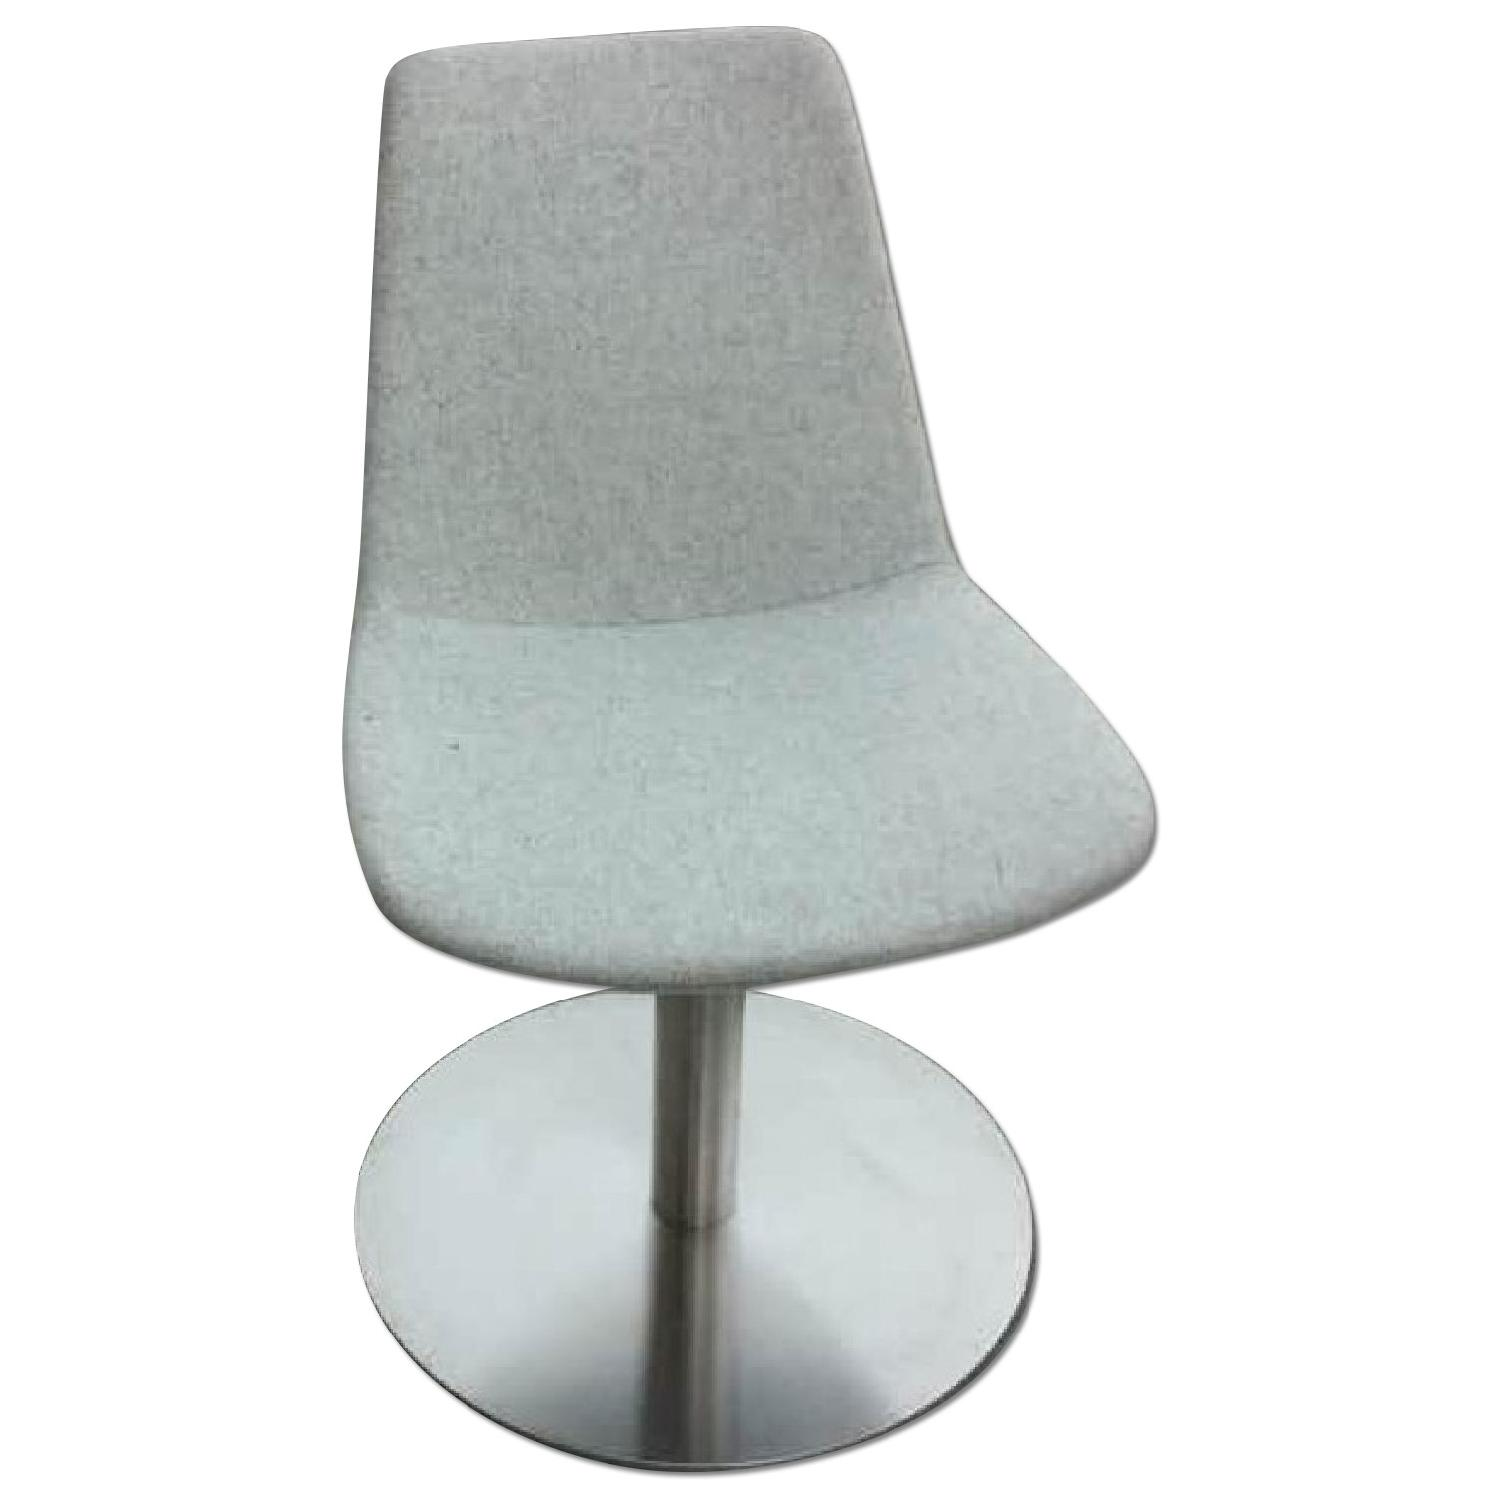 SohoConcept Swivel Accent/Dining Chair in Light Wool Fabric  - image-0